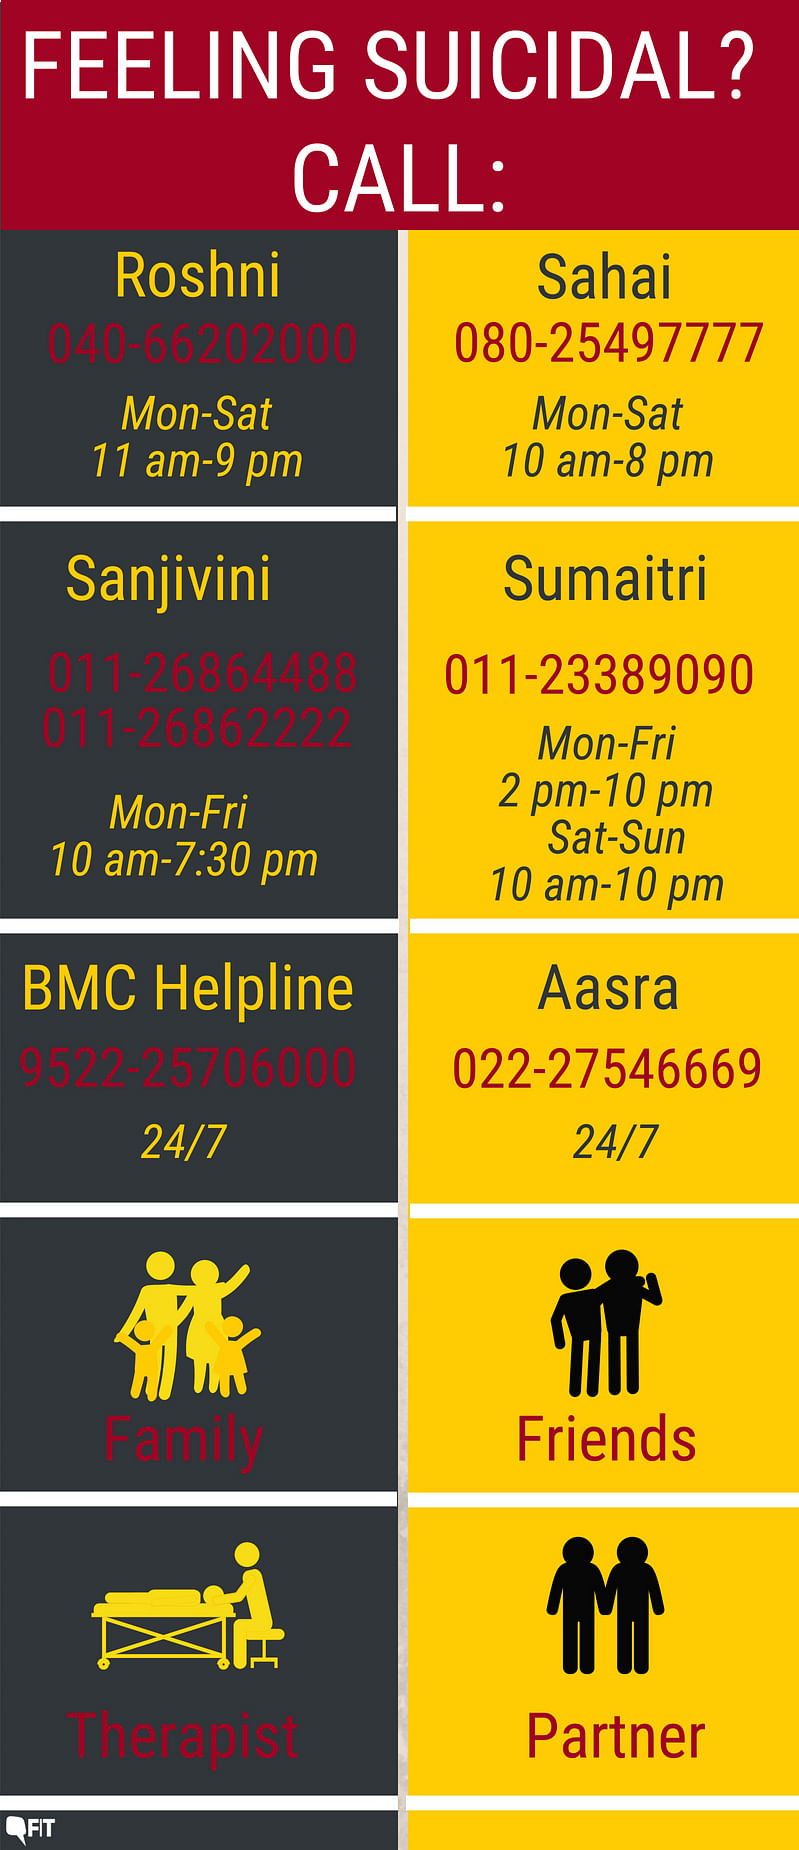 Another Student Suicide: A List of Prevention Helplines To Call